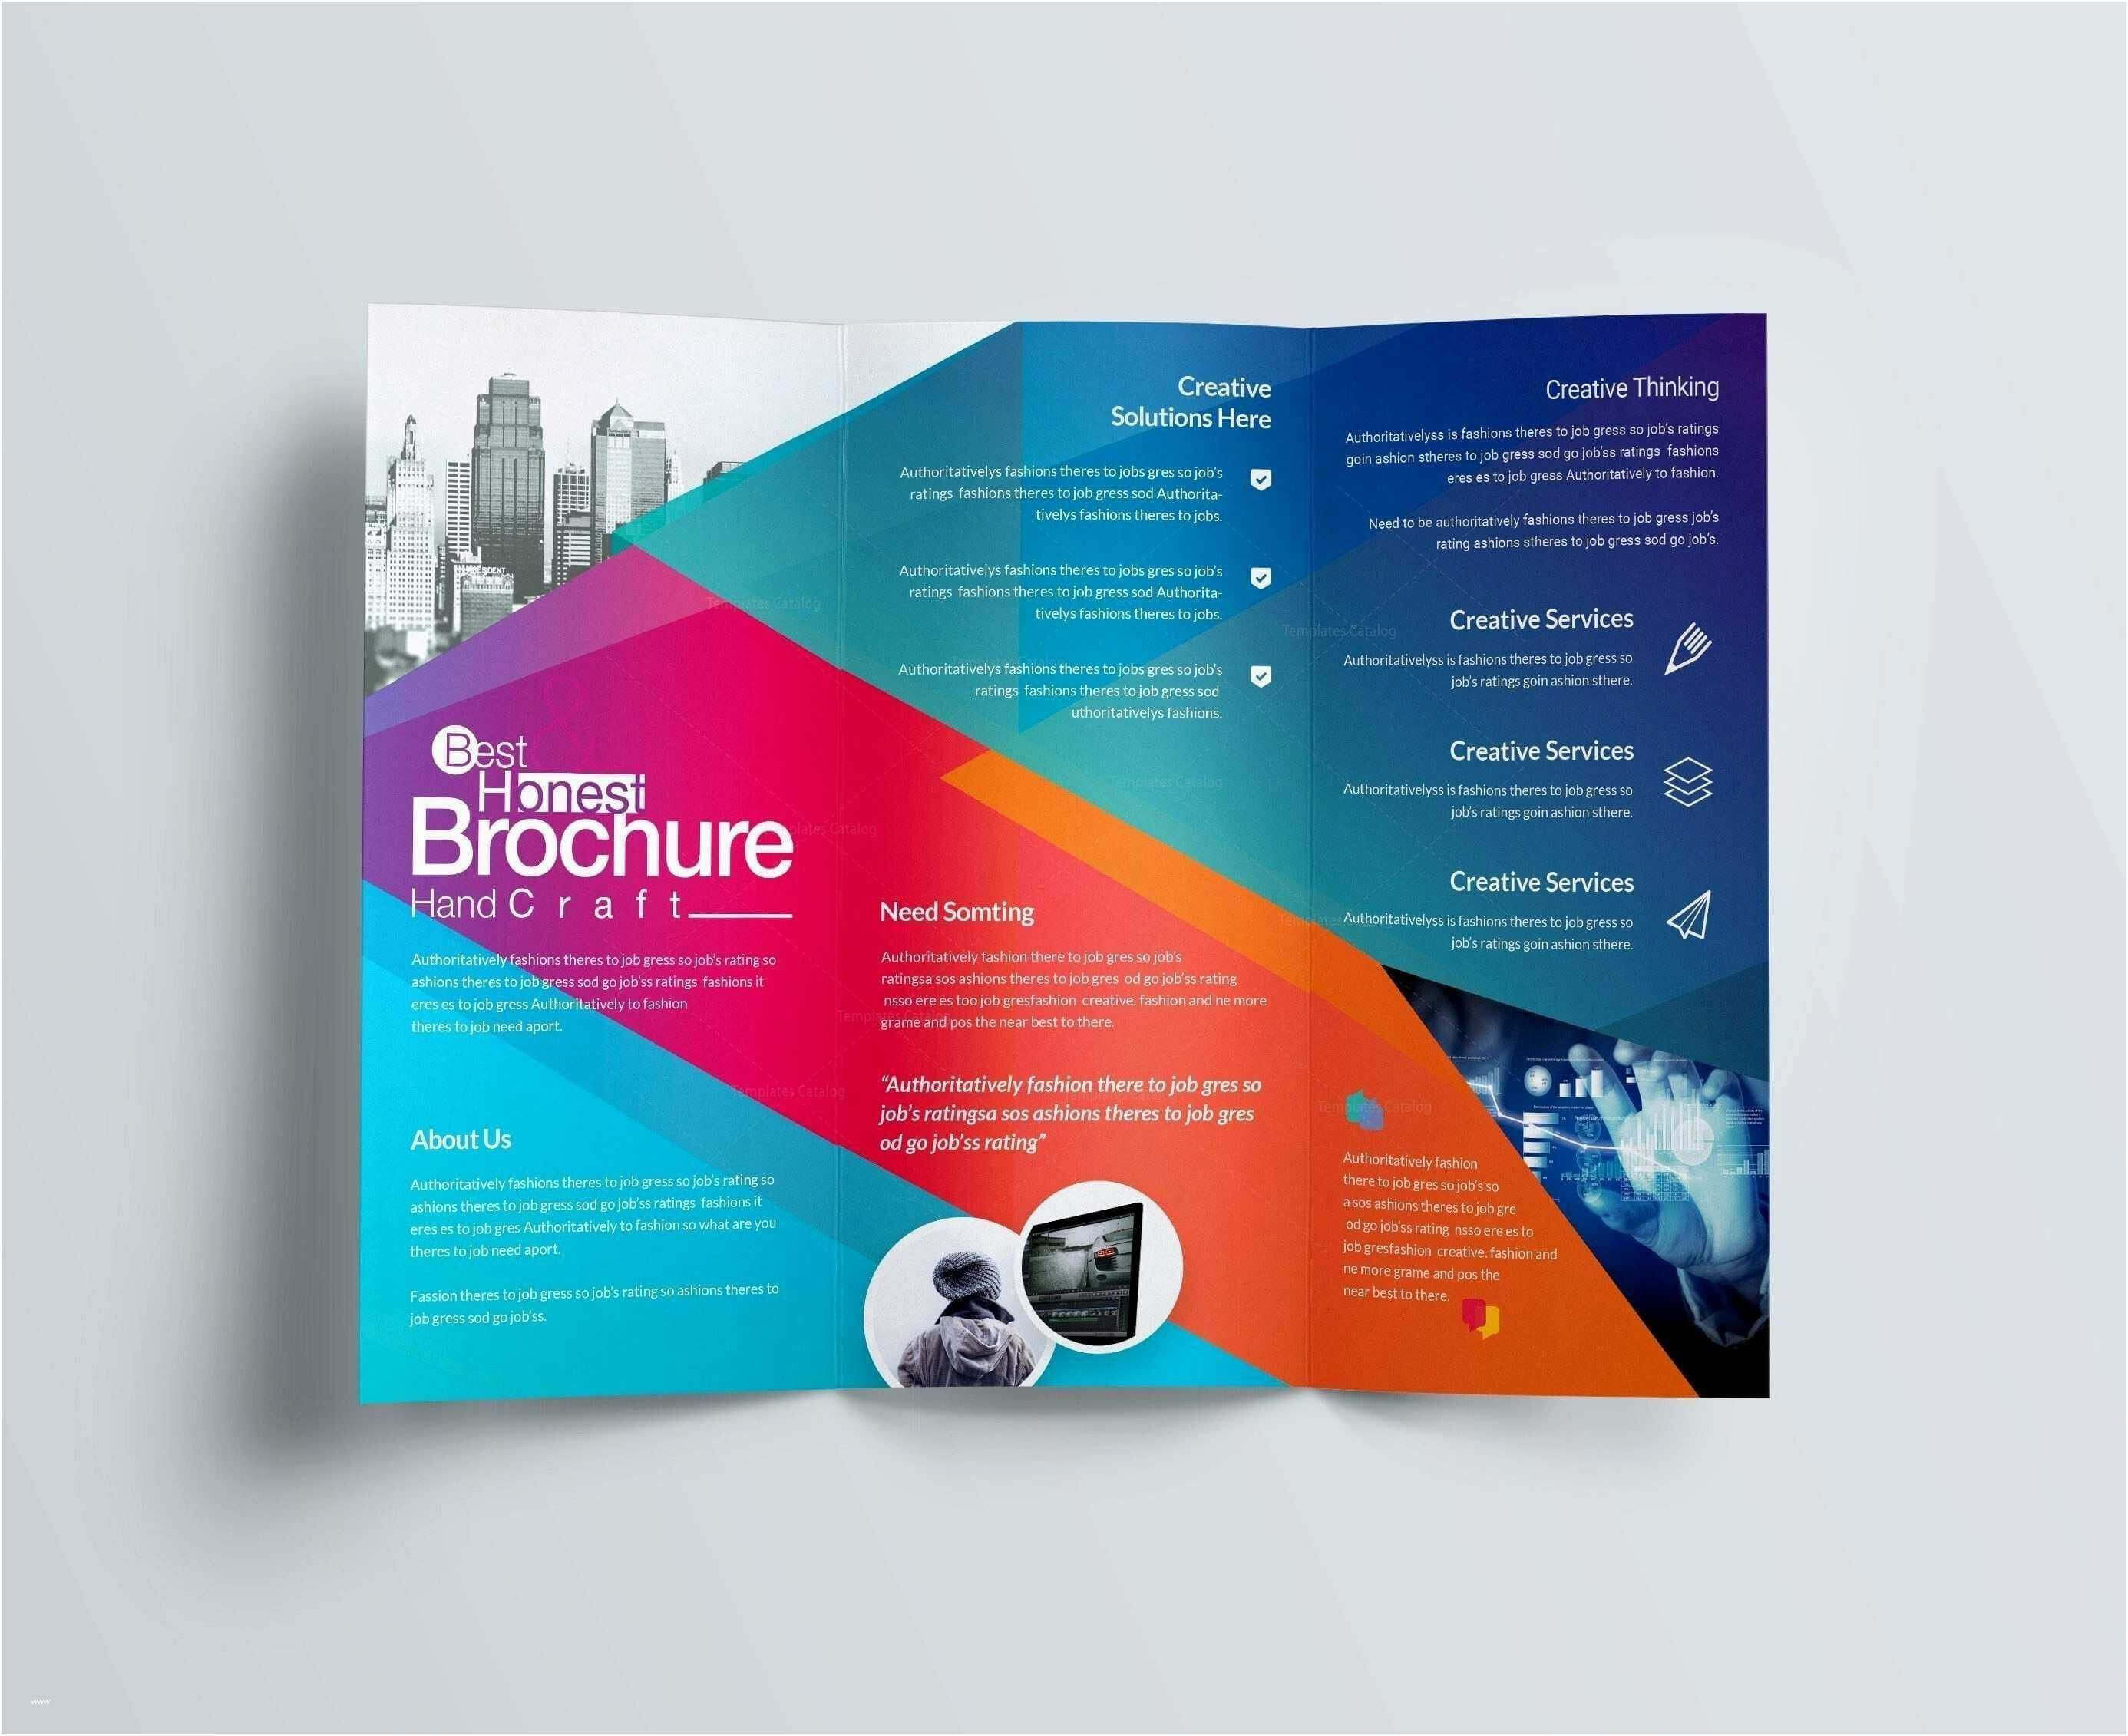 Free Powerpoint Templates For Mac Borders Education throughout Keynote Brochure Template